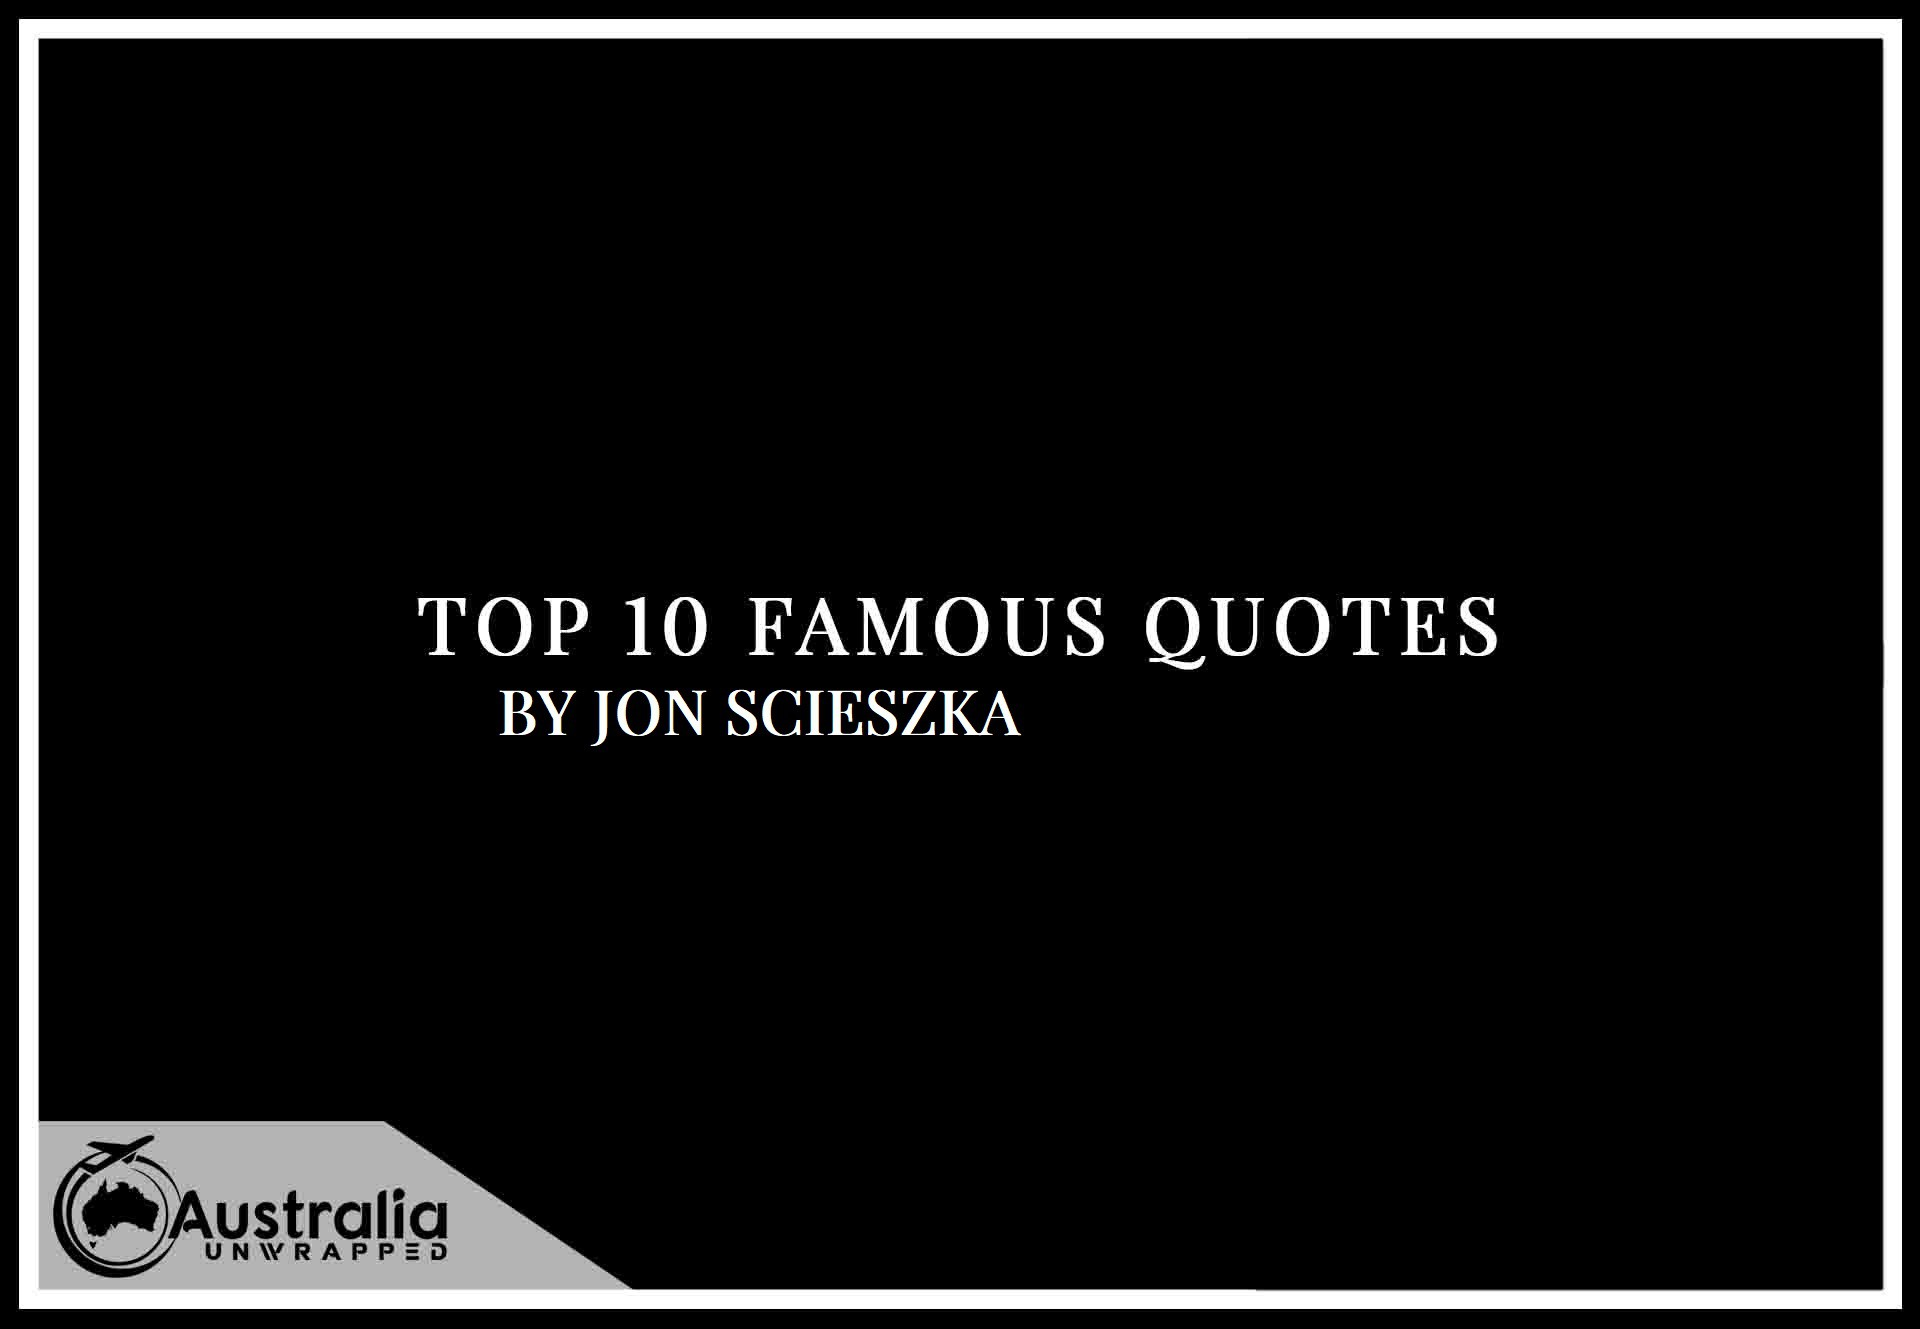 Top 10 Famous Quotes by Author Jon Scieszka